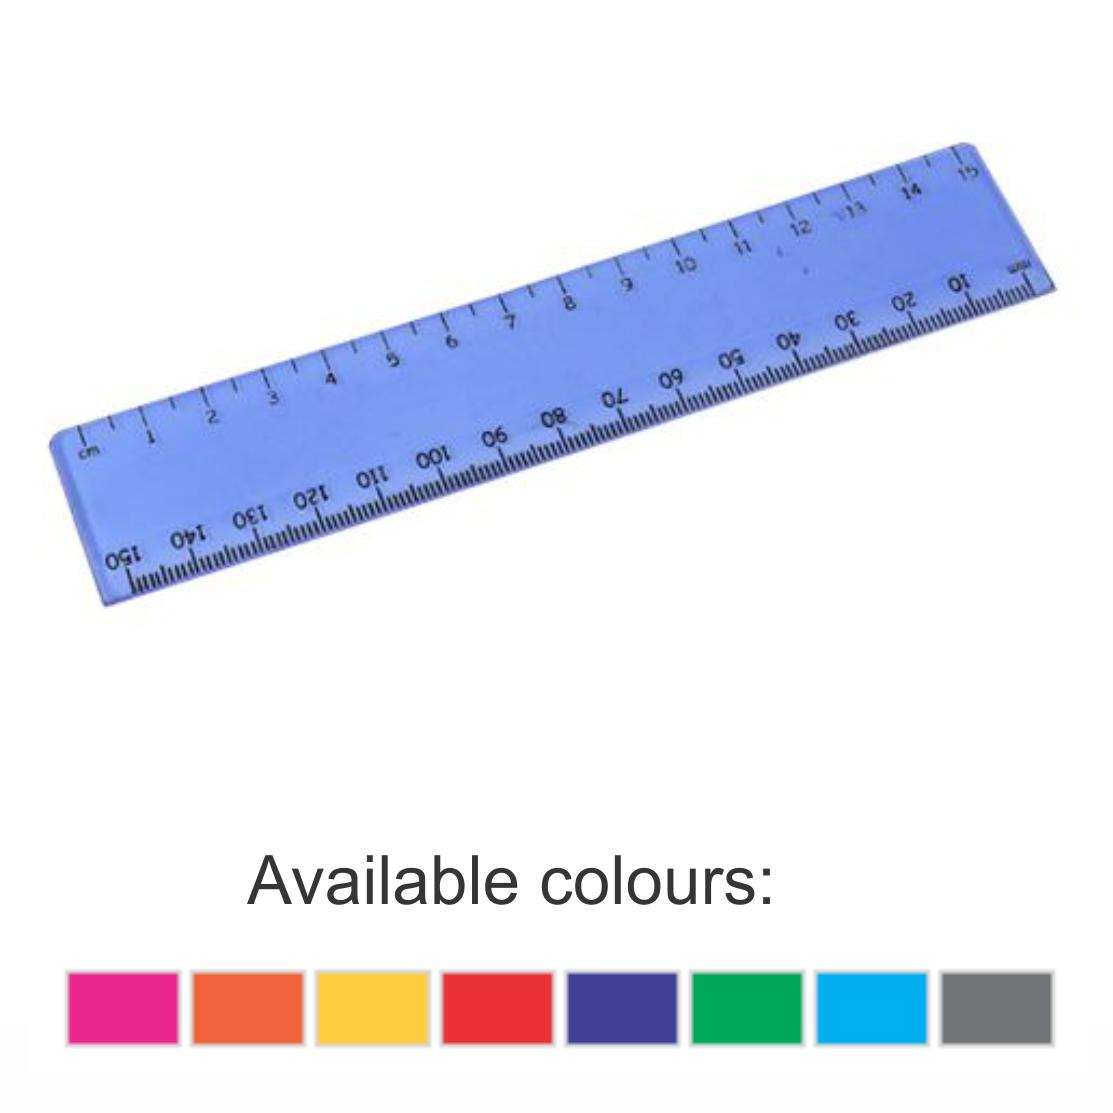 15cm Transparent Ruler With 1 Colour Print